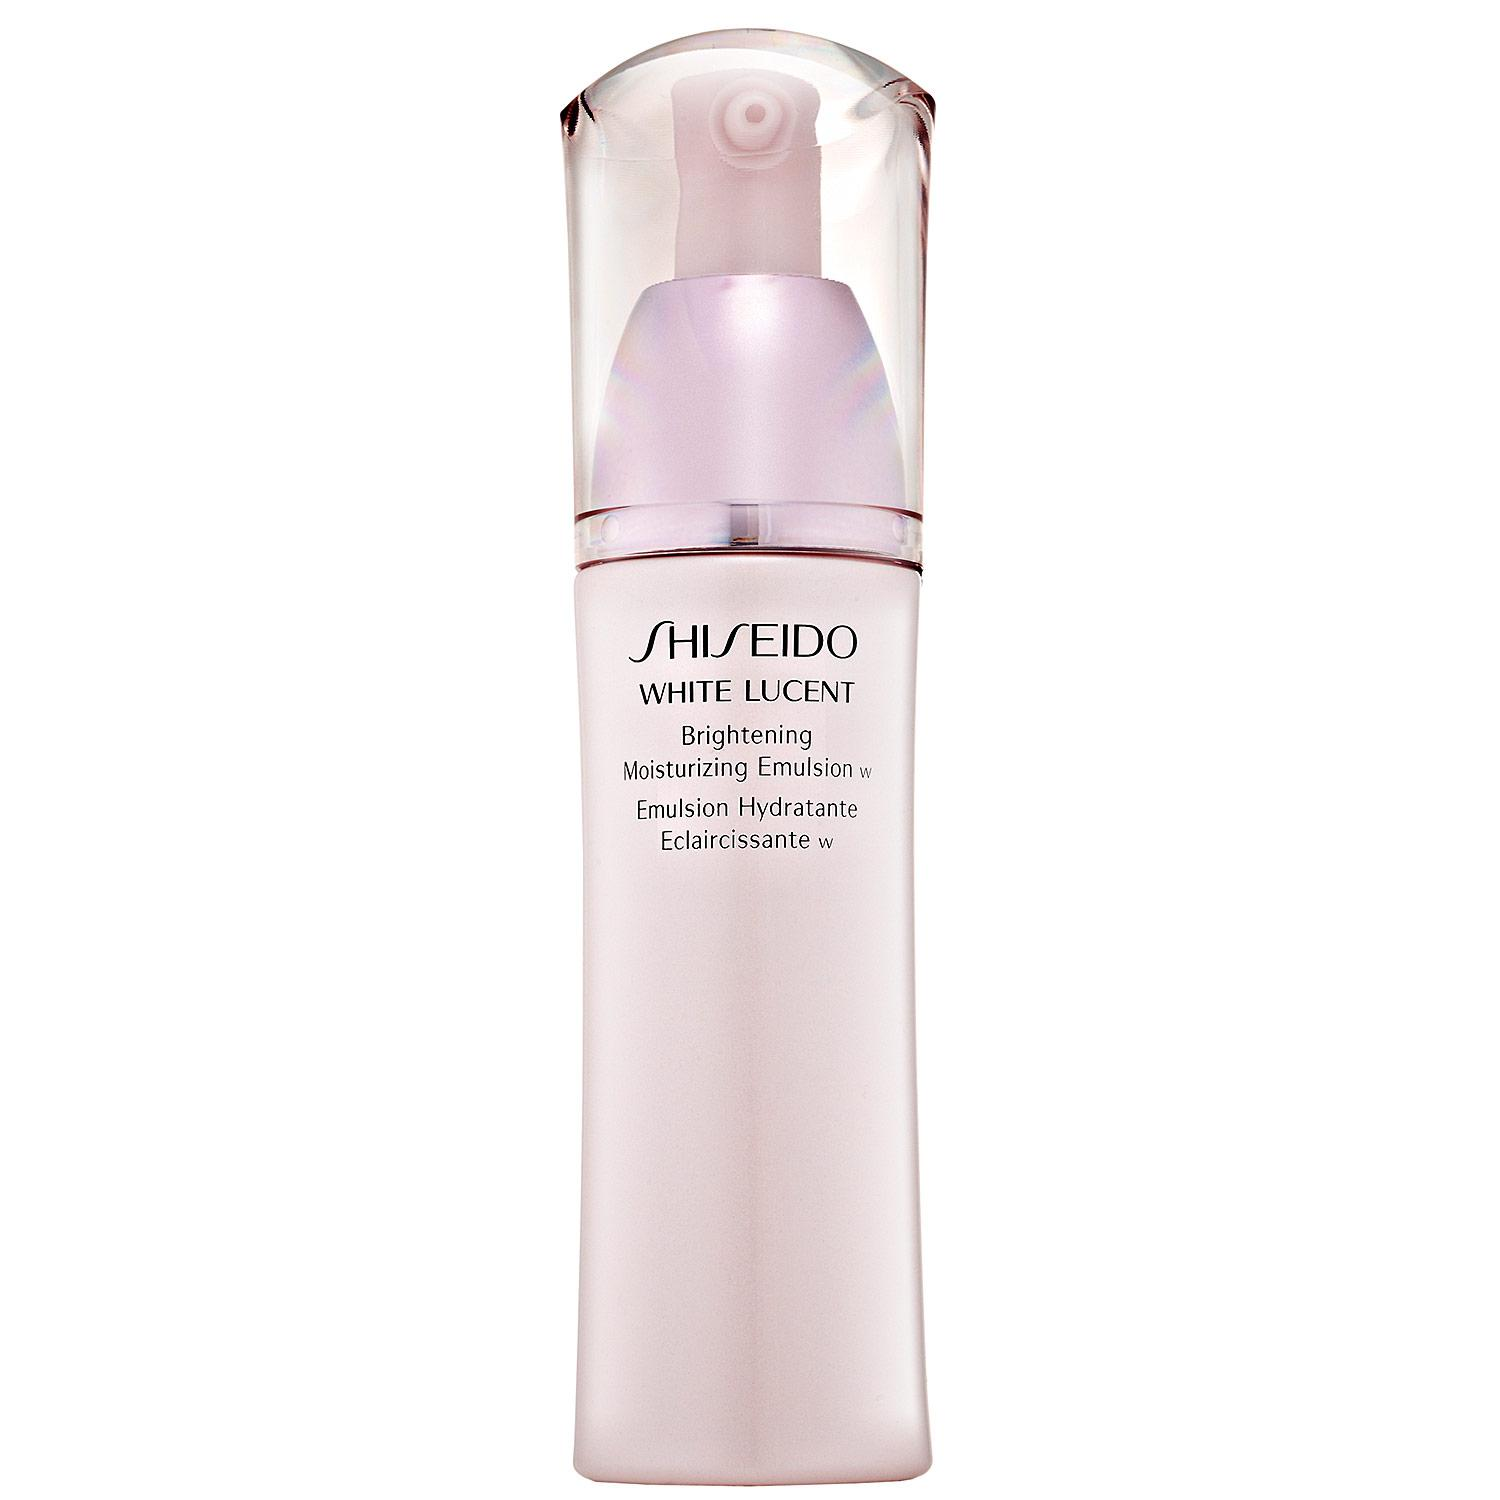 White Lucent Brightening Moisturizing Emulsion